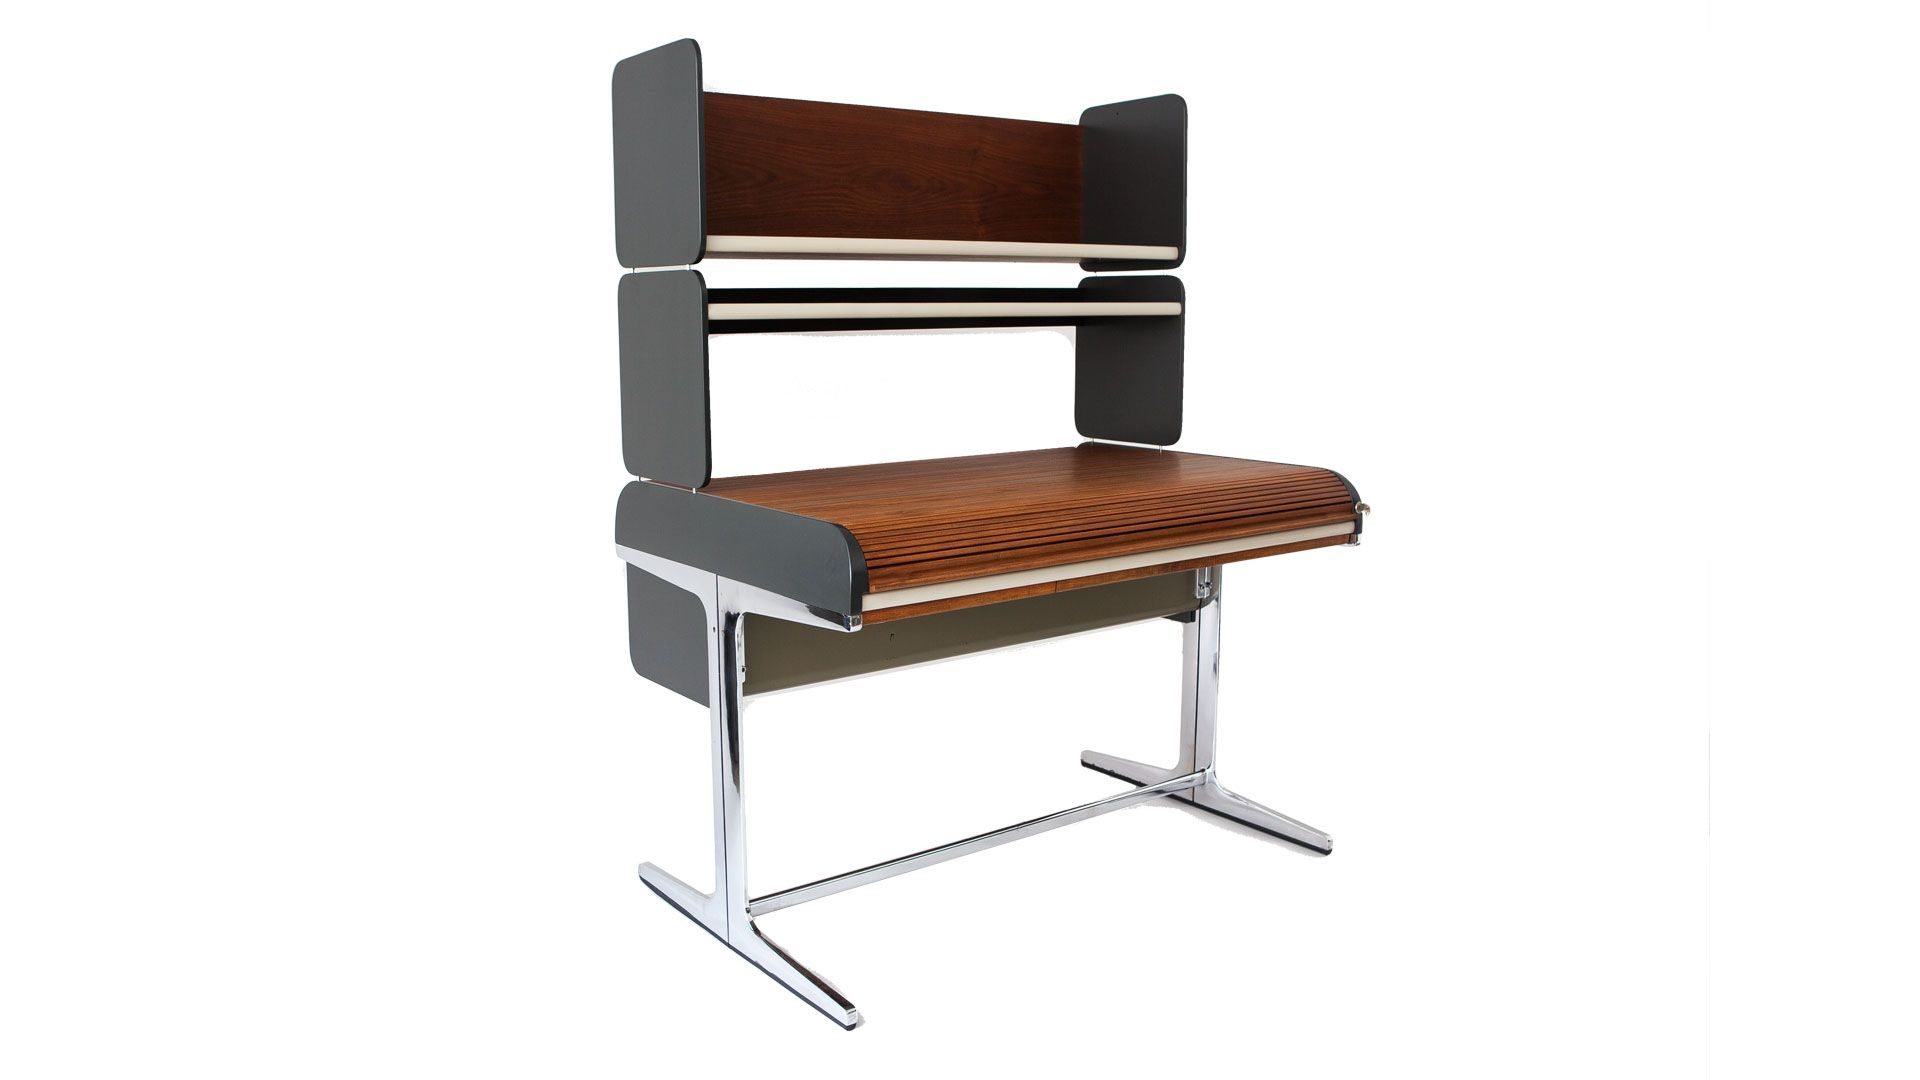 tall action office desk by george nelson for herman miller 1964 action office desk george